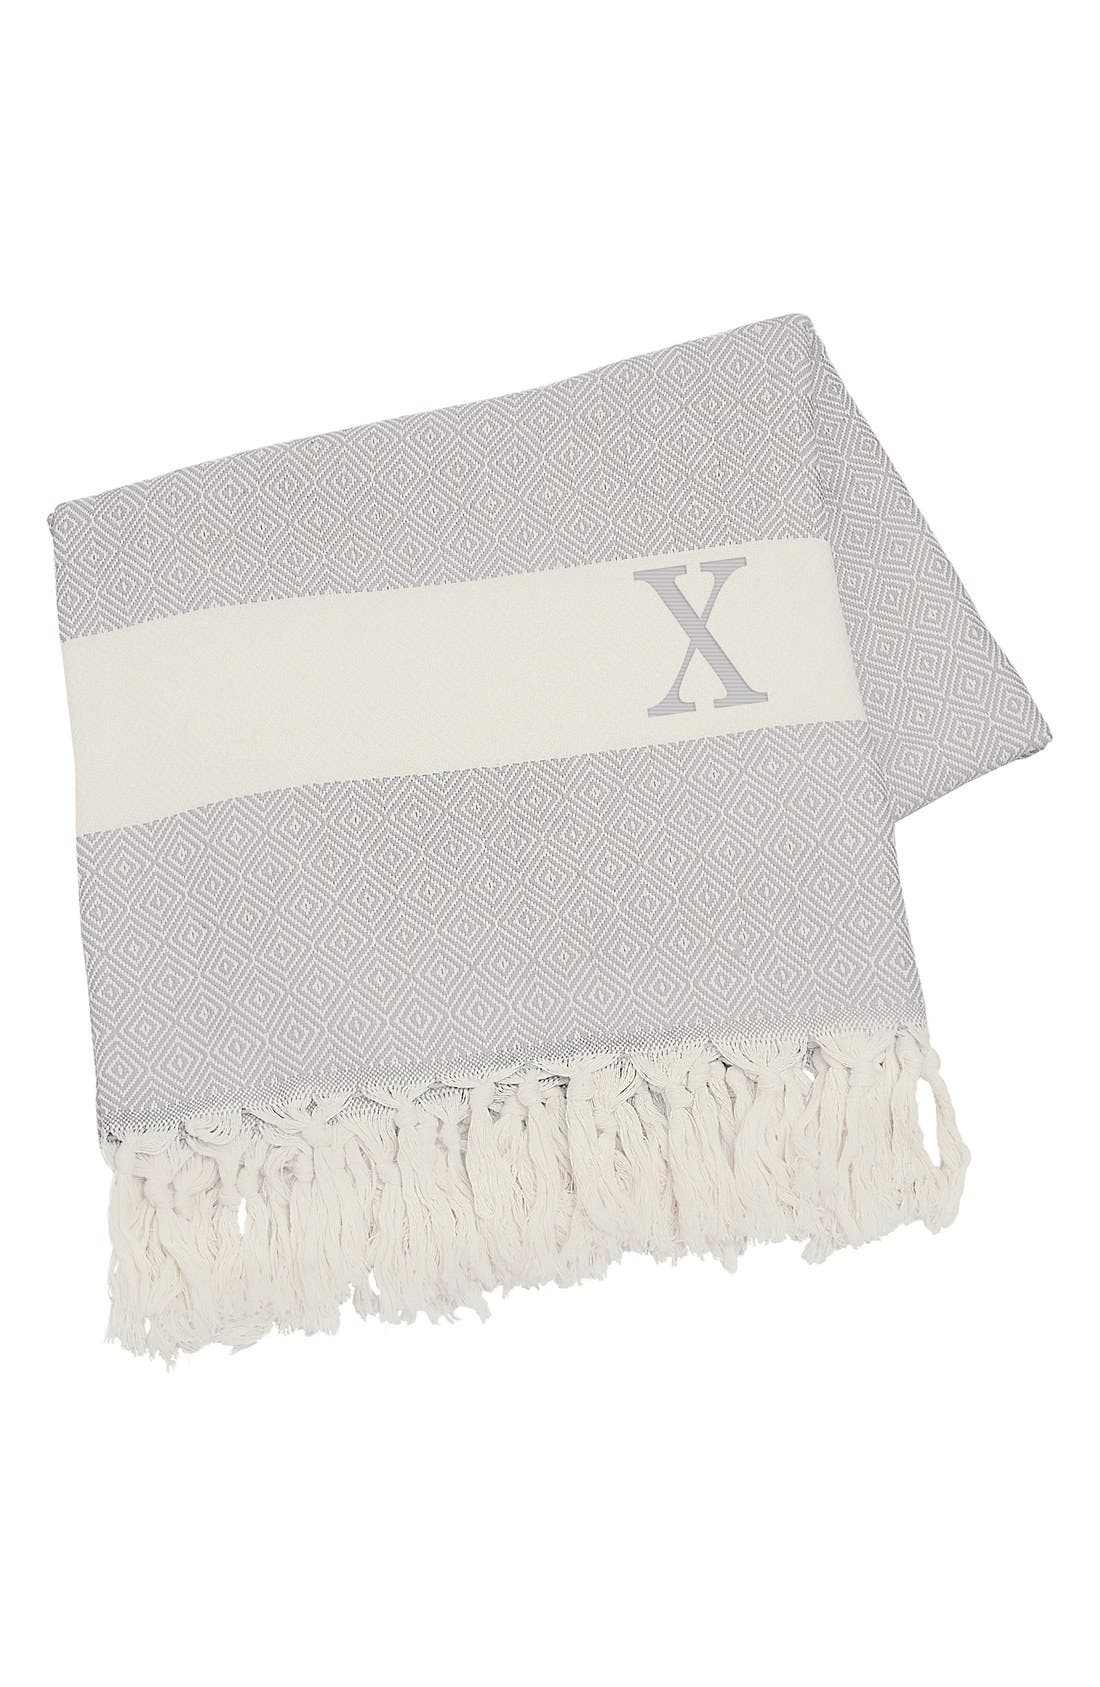 Alternate Image 1 Selected - Cathy's Concepts Monogram Turkish Cotton Throw